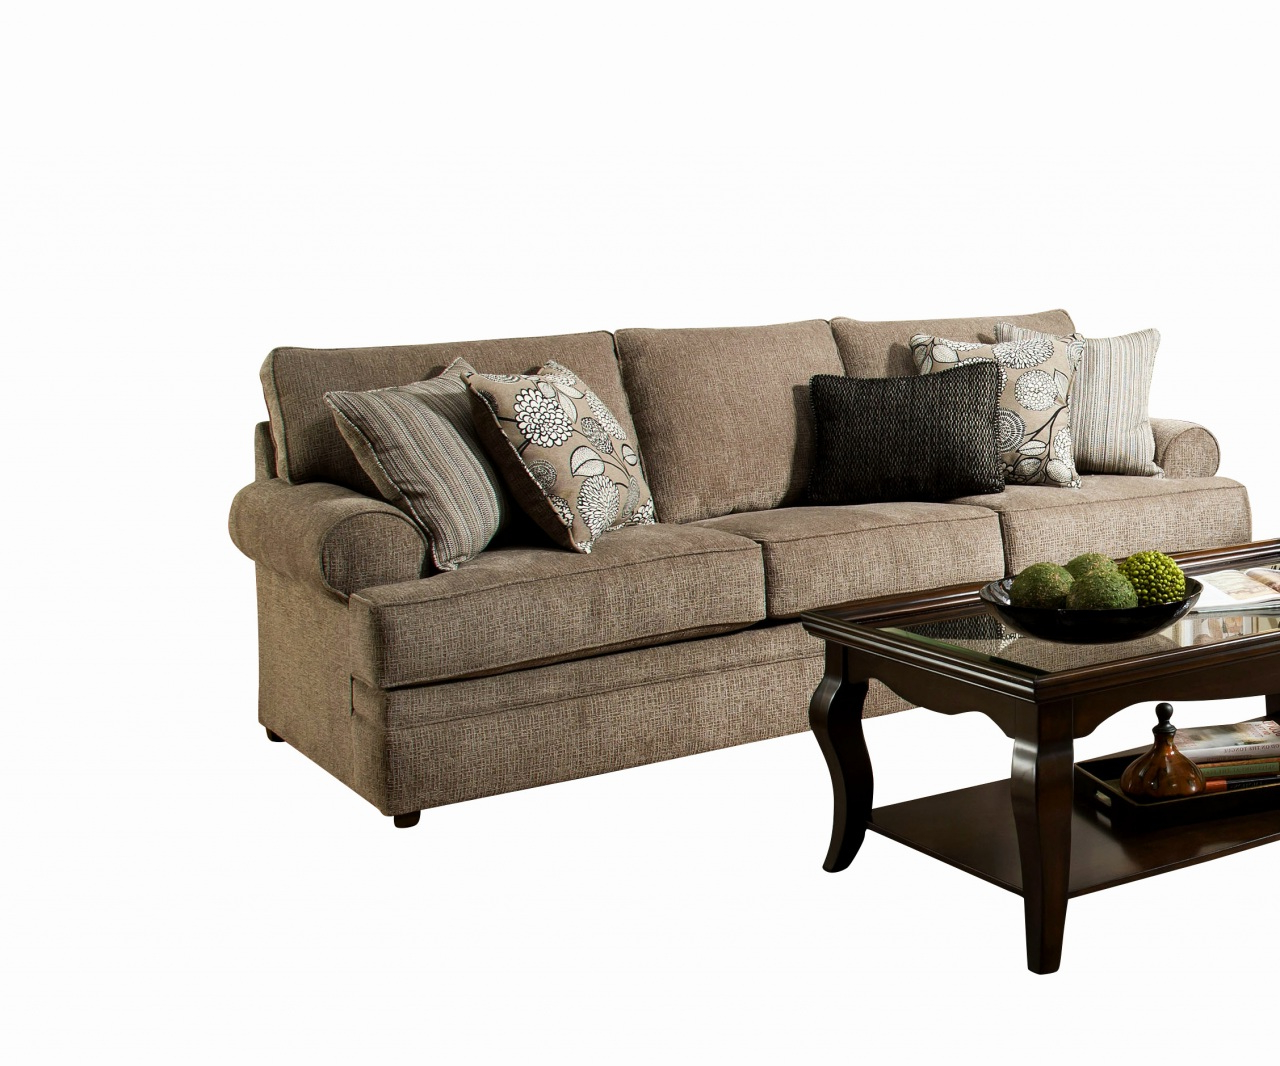 Cama Colchon Valladolid Sofas Valladolid Etdg Cheap Sofa Beds Los Angeles Beautiful